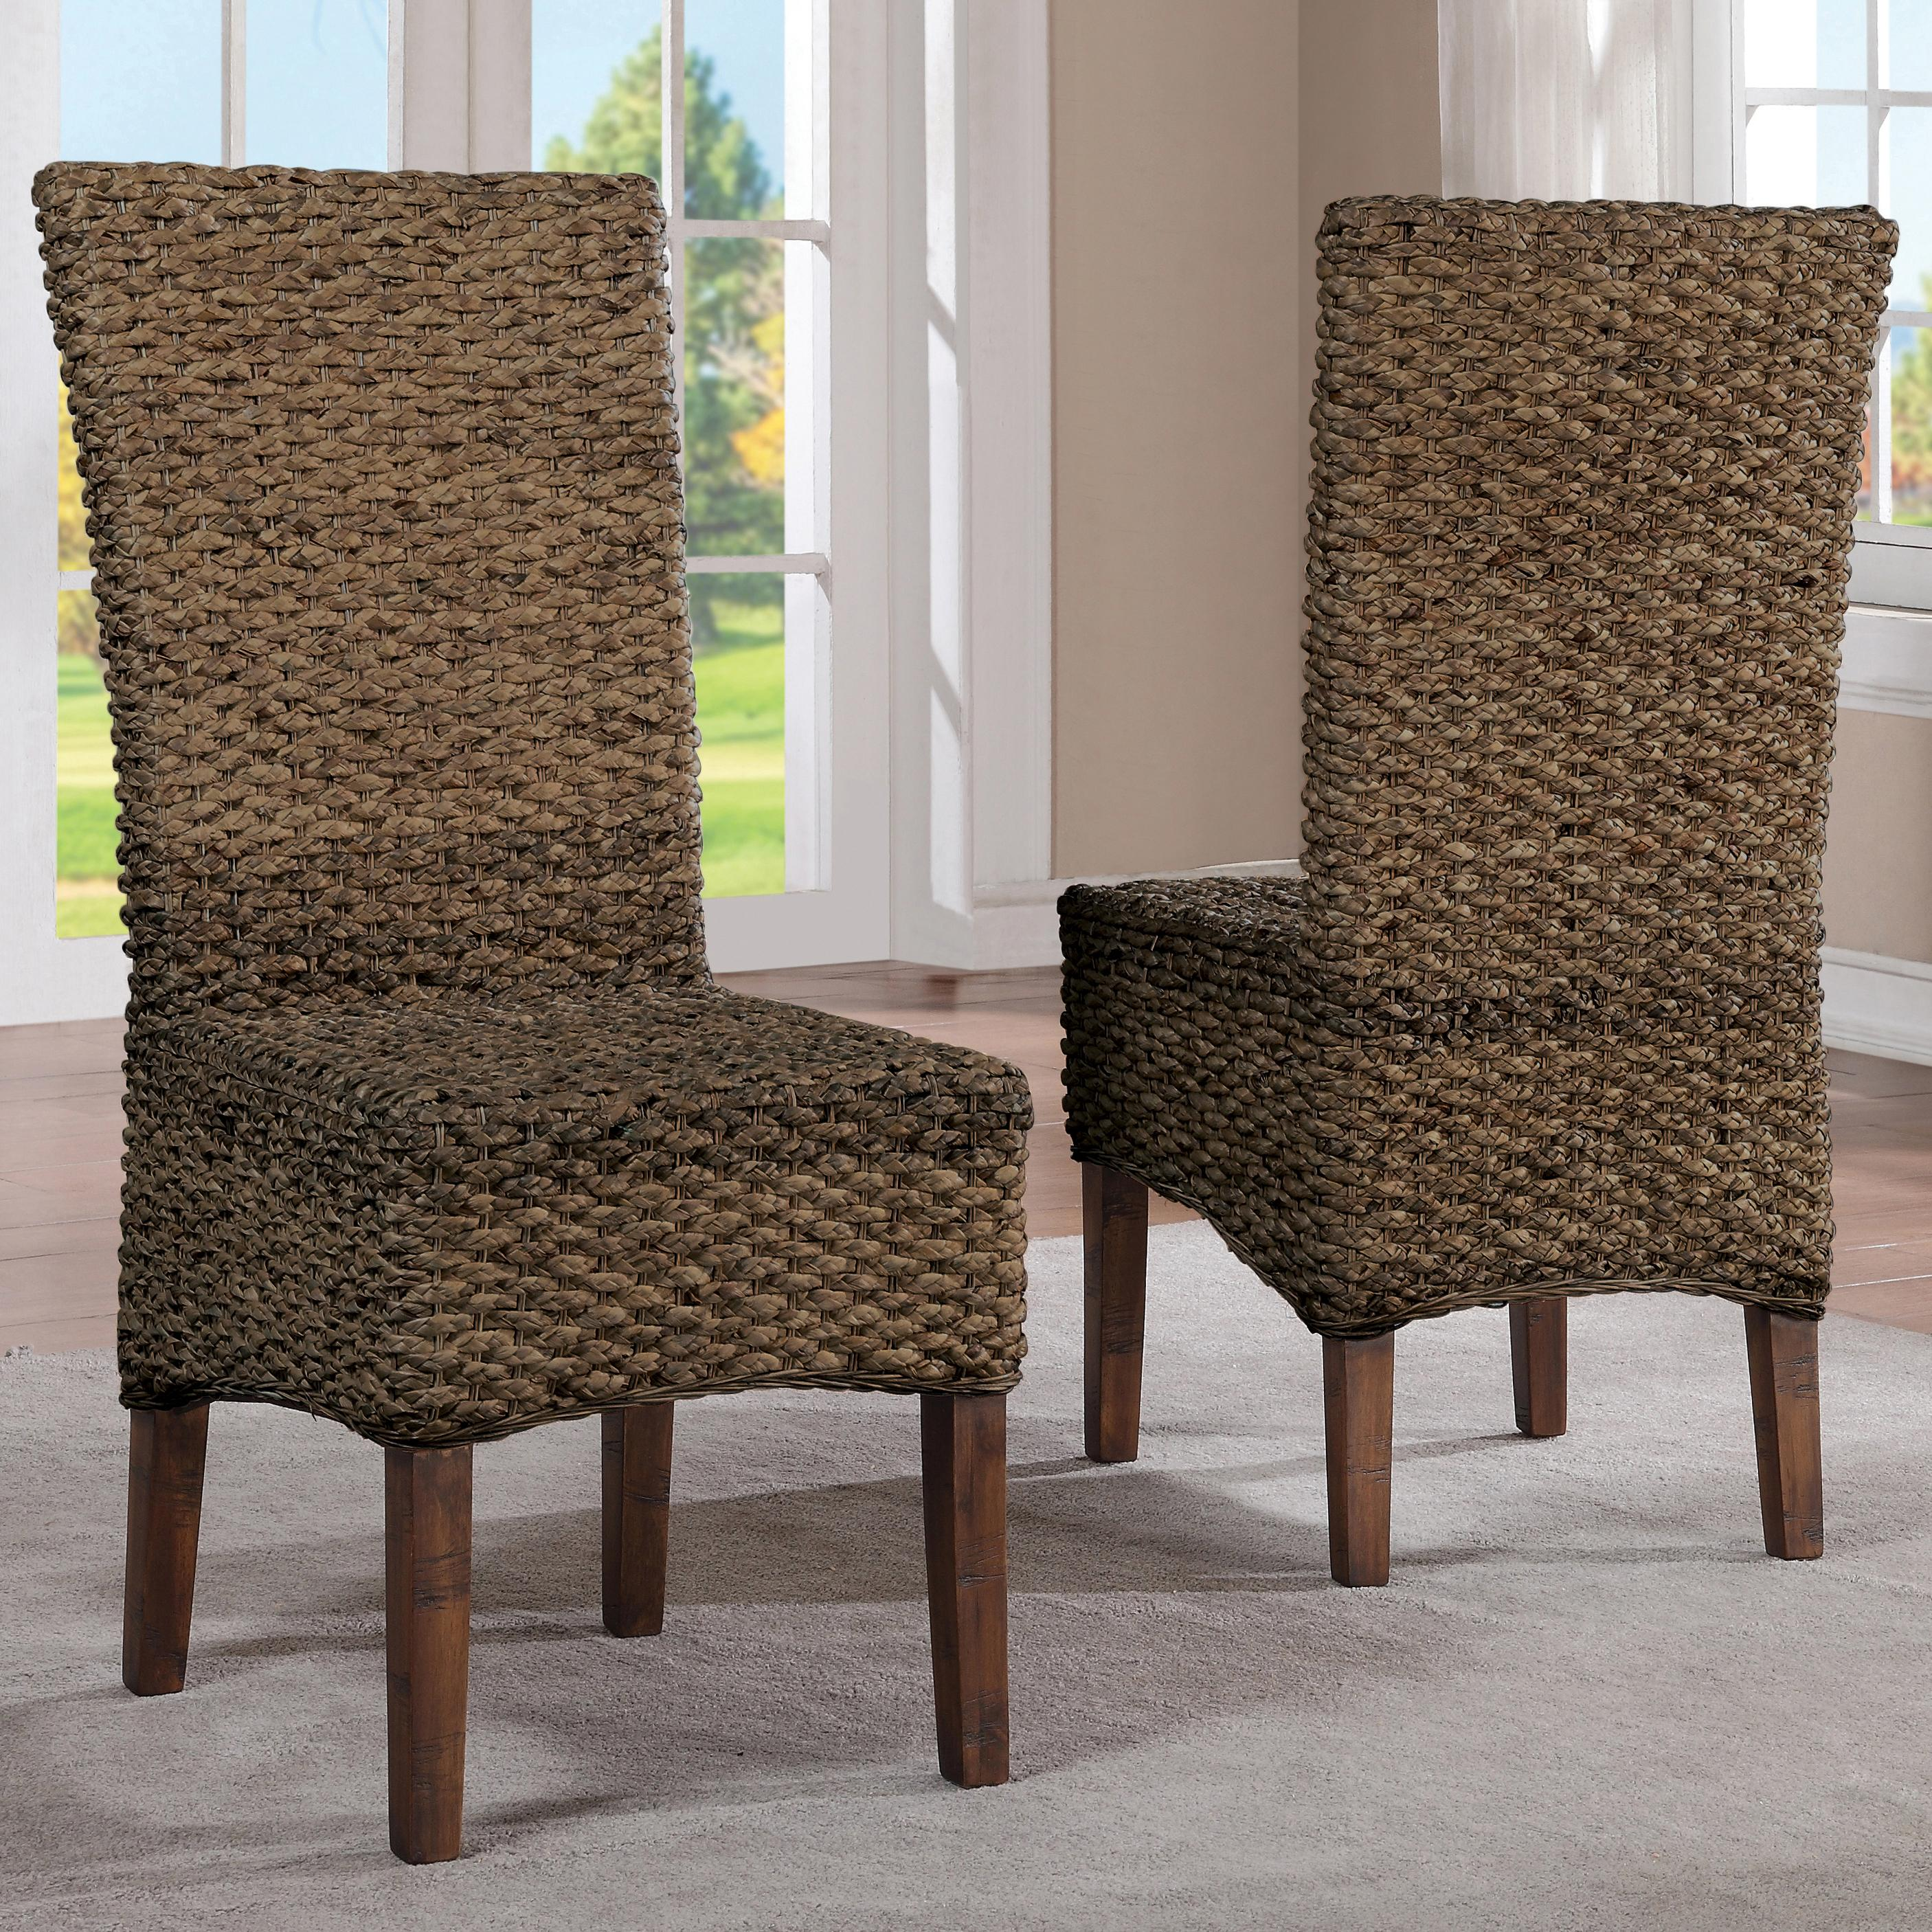 Woven Chair Mix N Match Chairs Woven Leaf Side Chair By Riverside